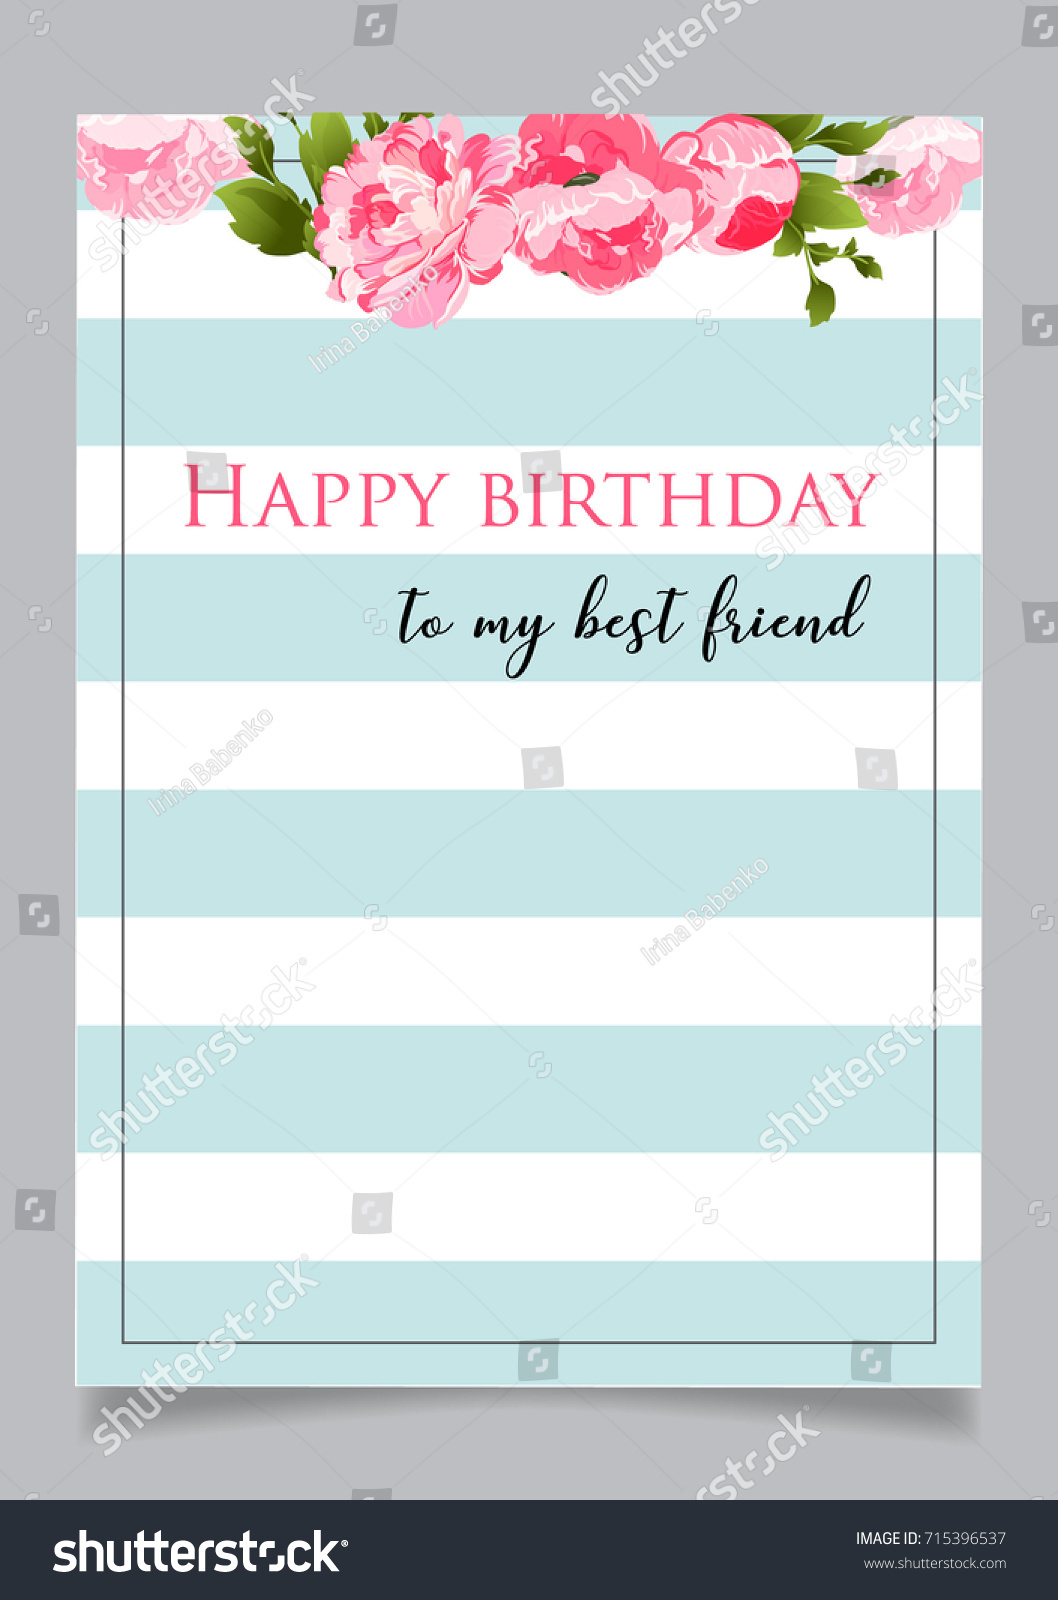 Birthday Greeting Card With Text To My Best Friend Blue Striped Background Floral Elements